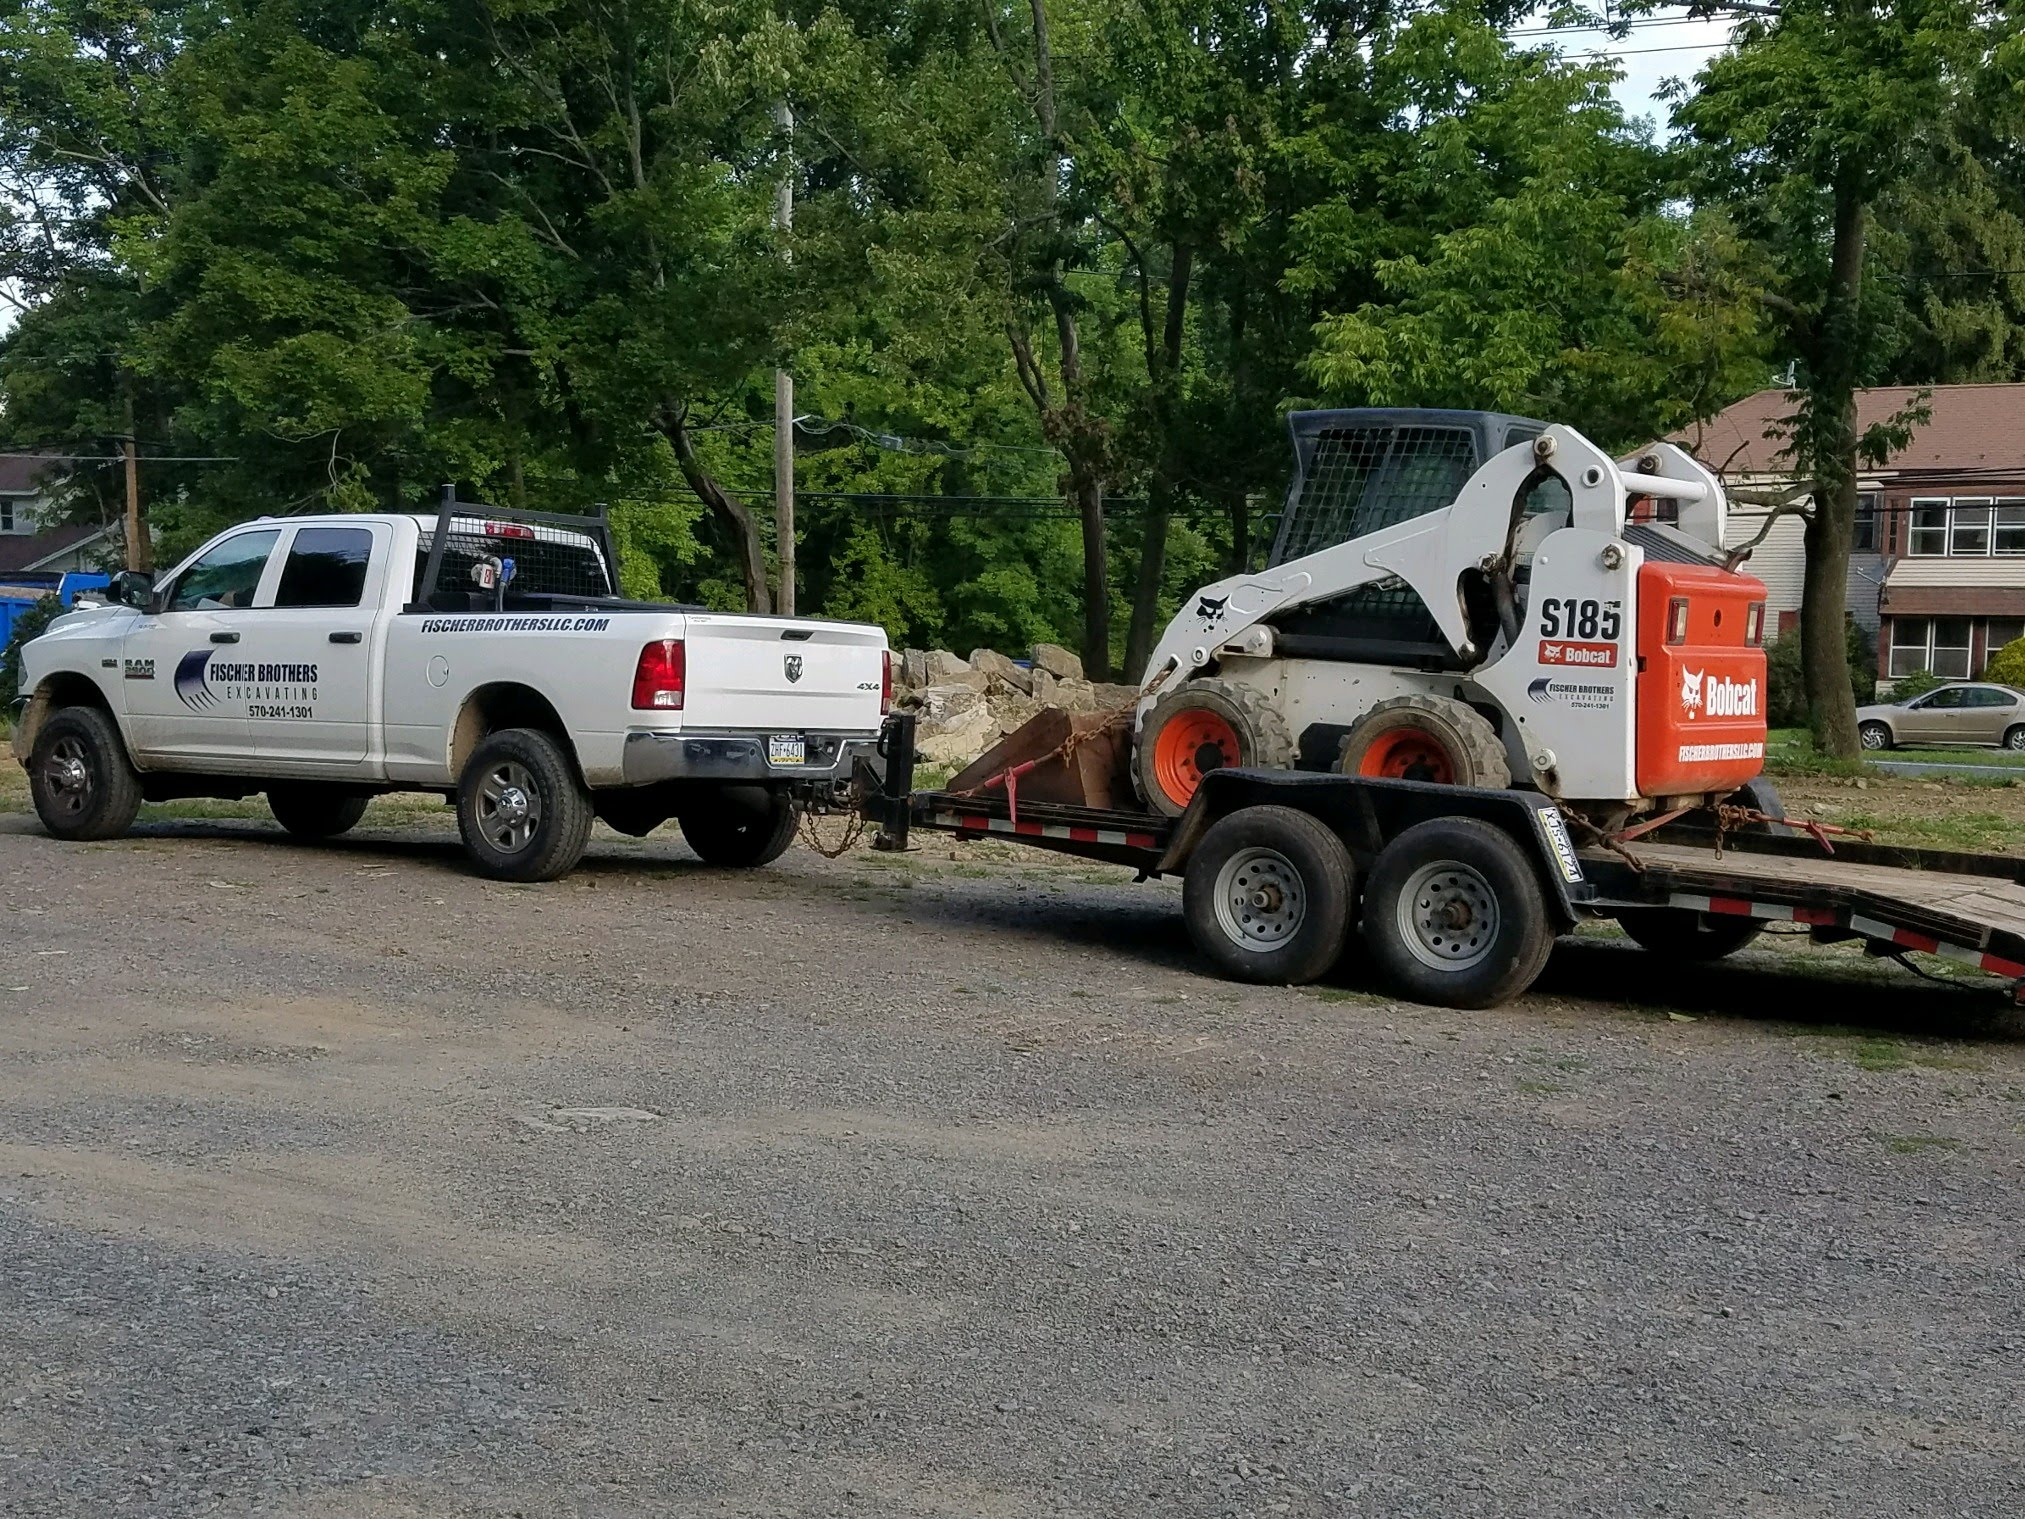 Truck with skidsteer on trailer